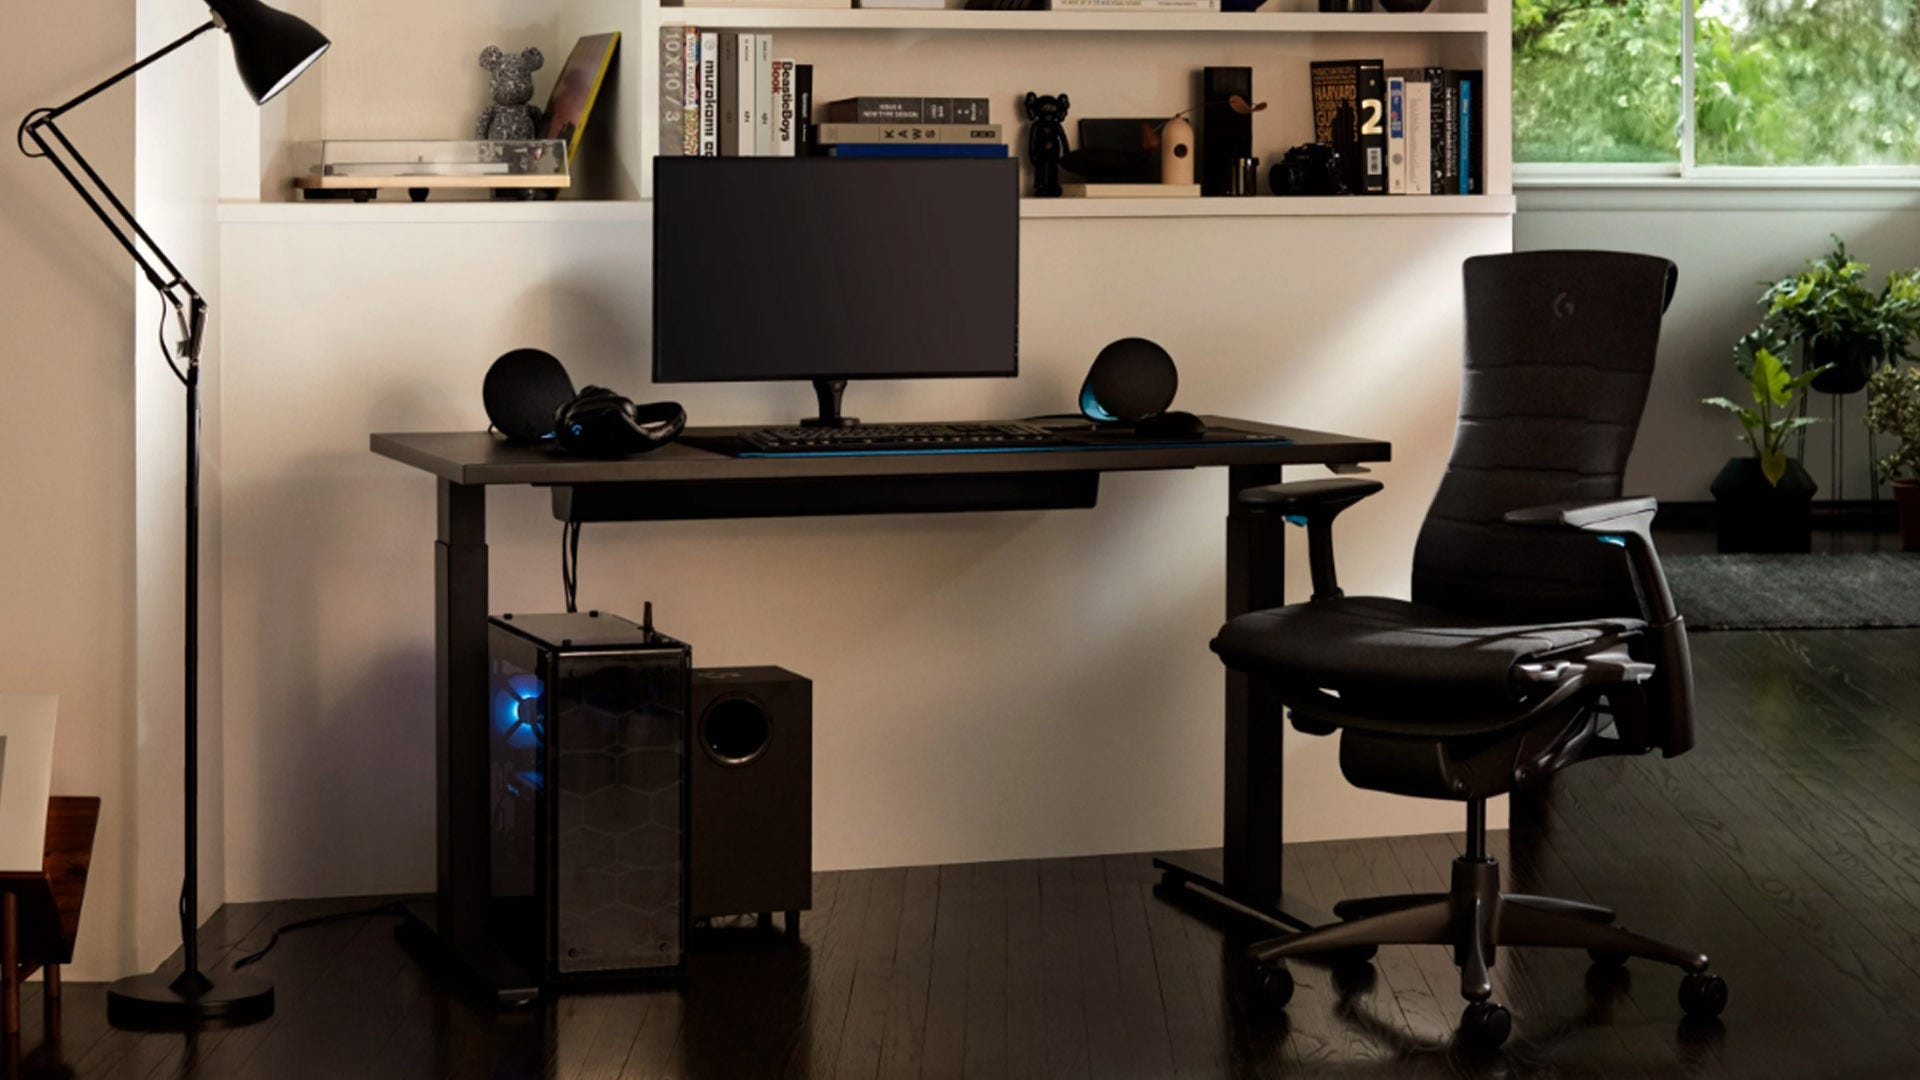 Herman Miller Embody chair and Moita desk in a home office